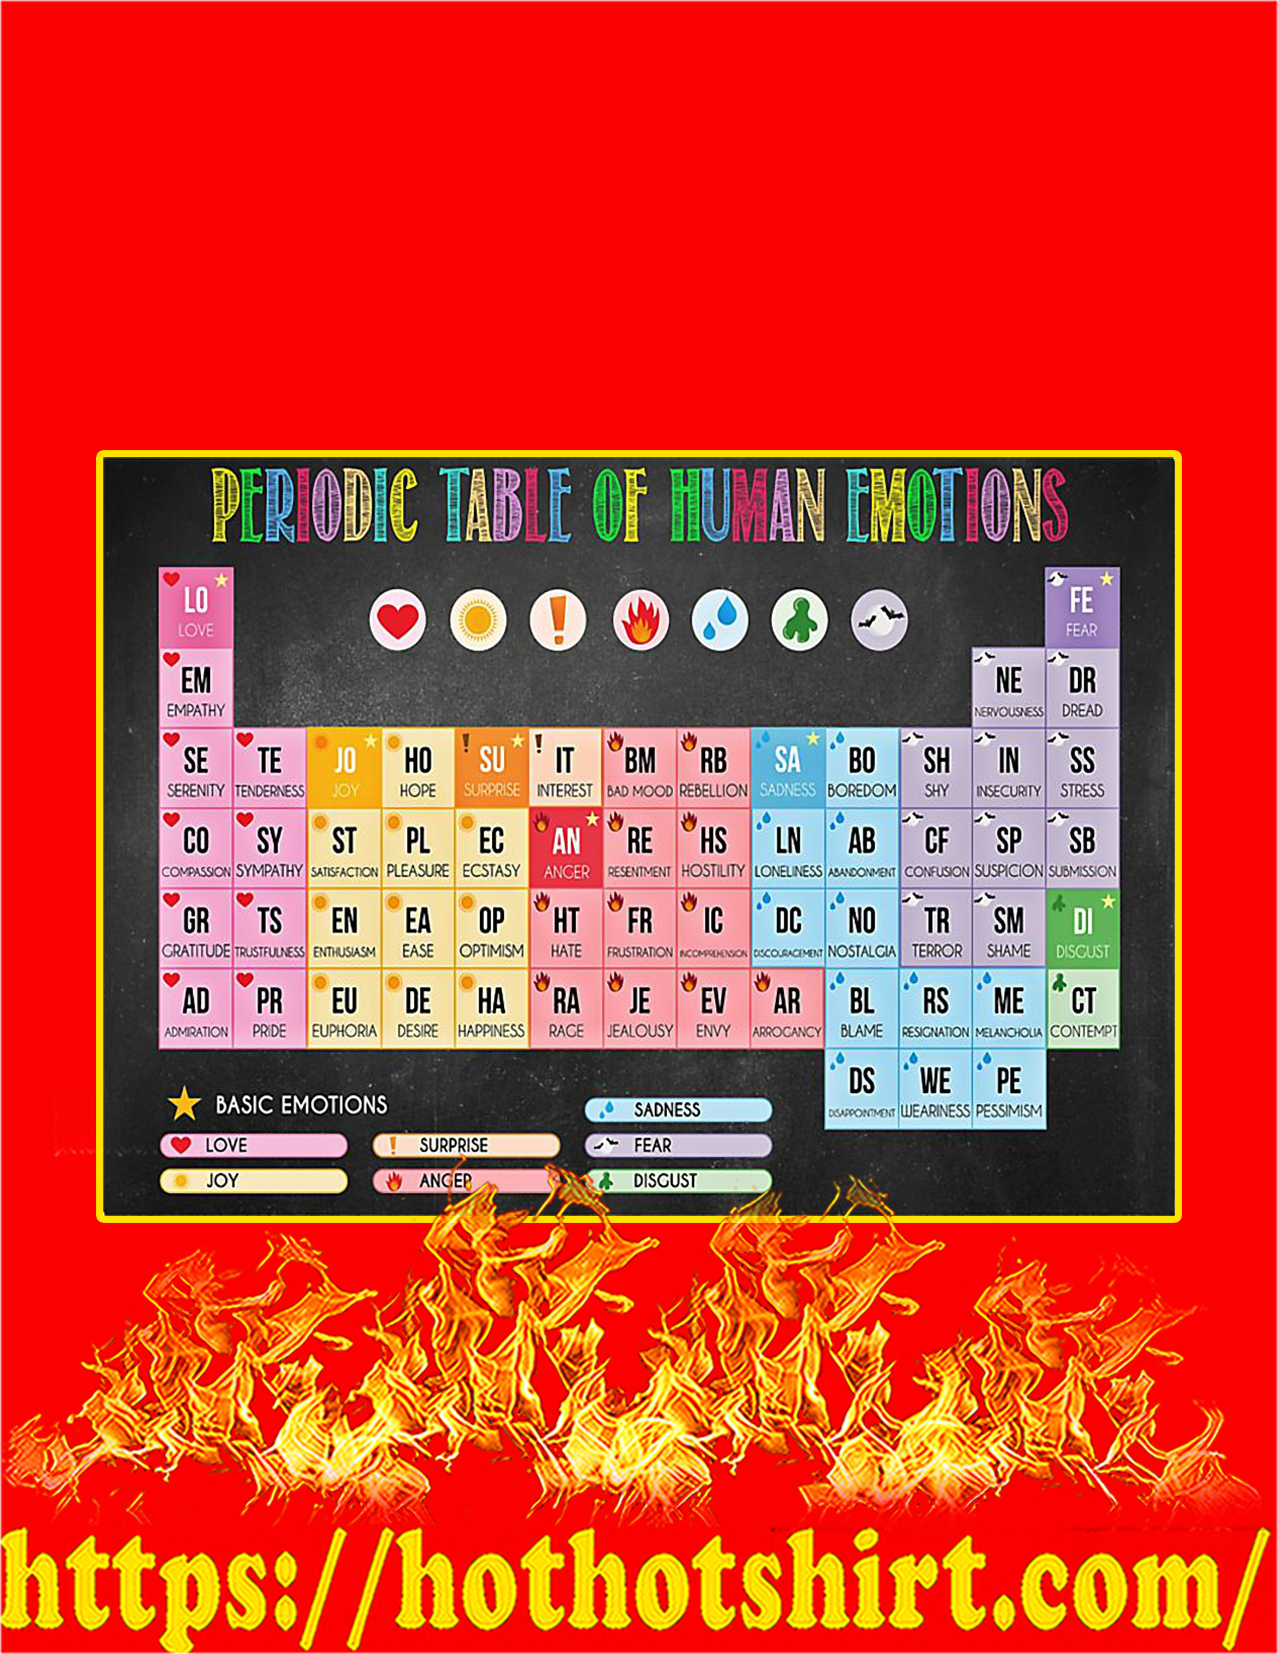 Social worker Periodic table of human emotions poster